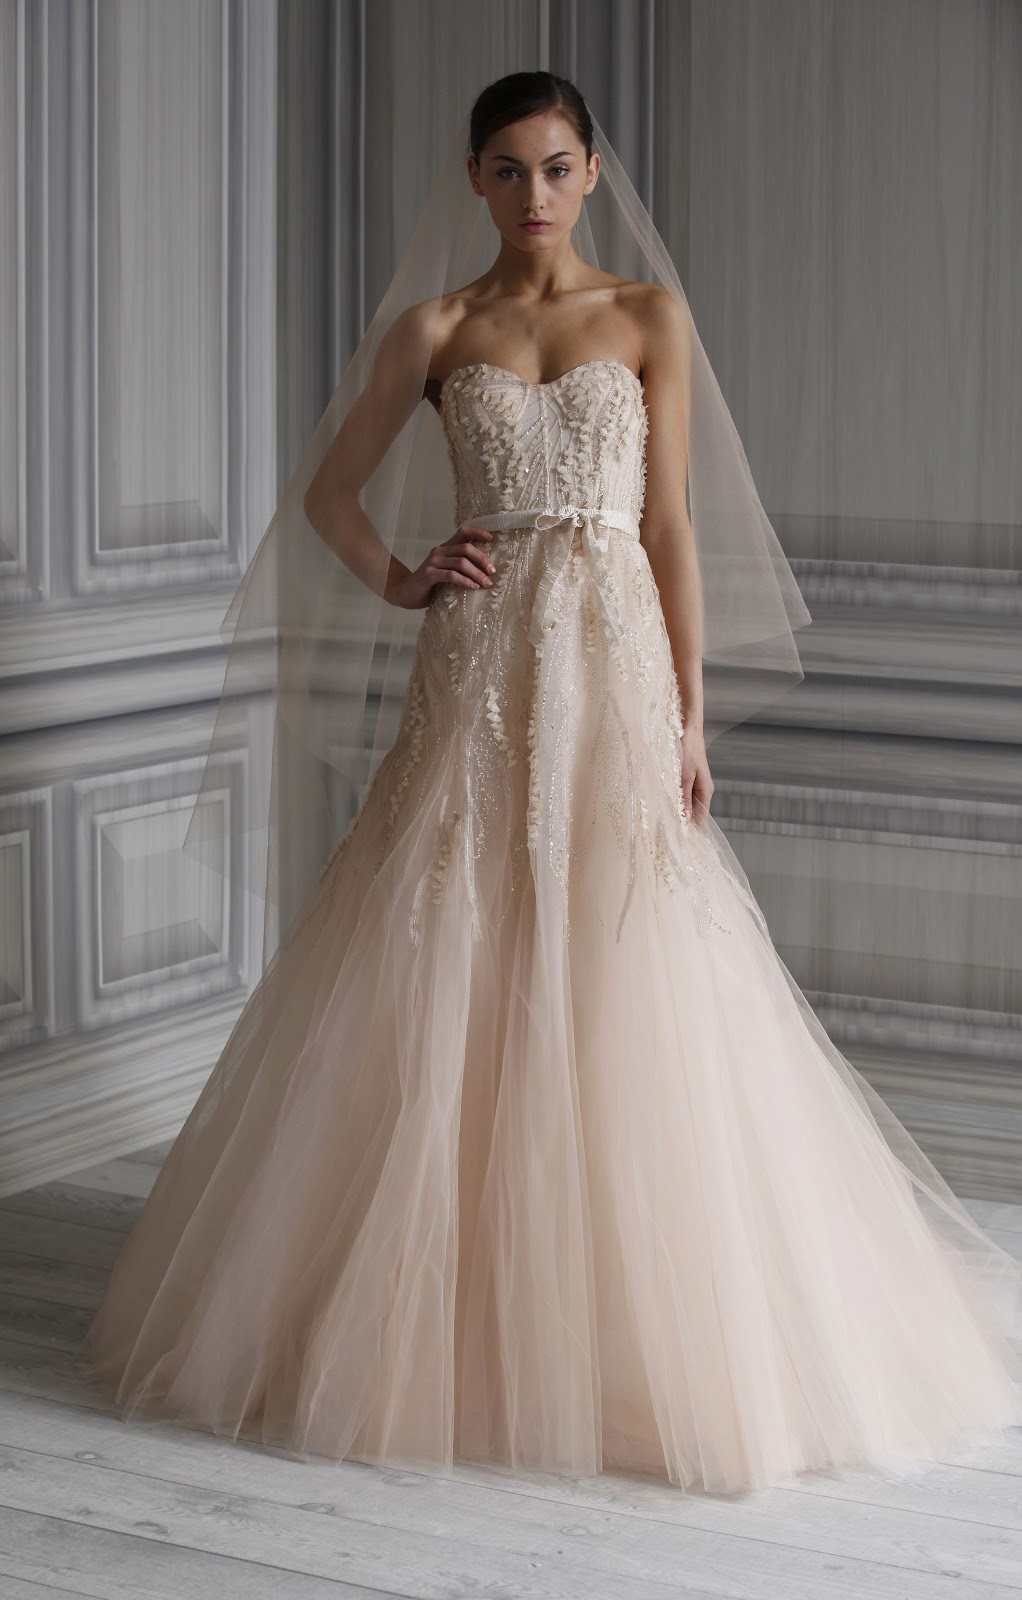 Monique Lhuillier Spring 2012 Bridal Collection Unique Wedding Ideas And Co